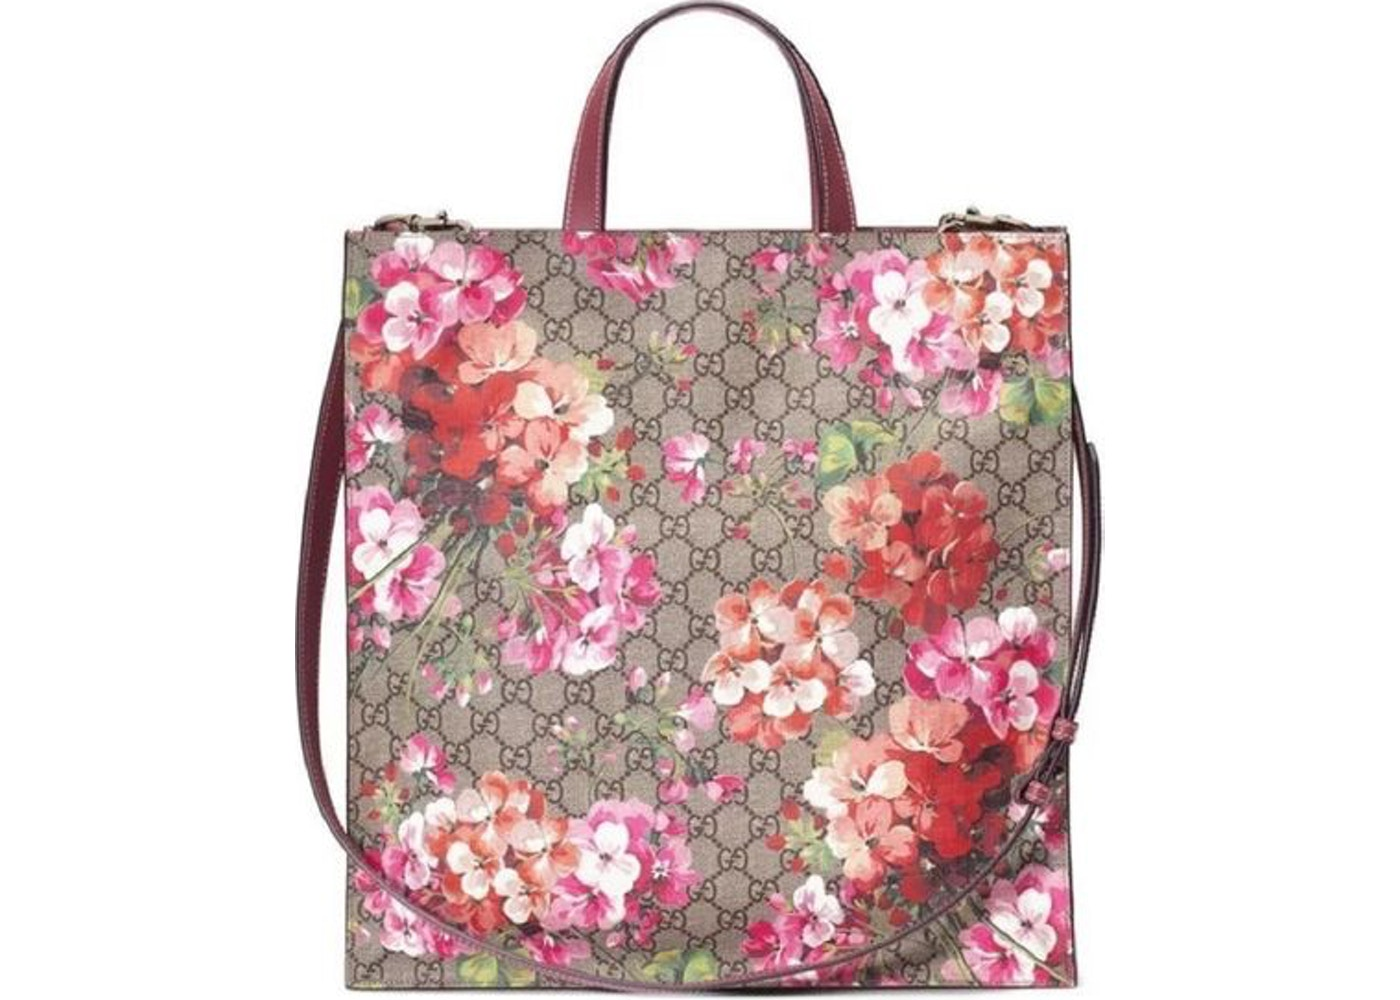 df9d4773452 Gucci Tote GG Supreme Blooms Large Pink/Brown